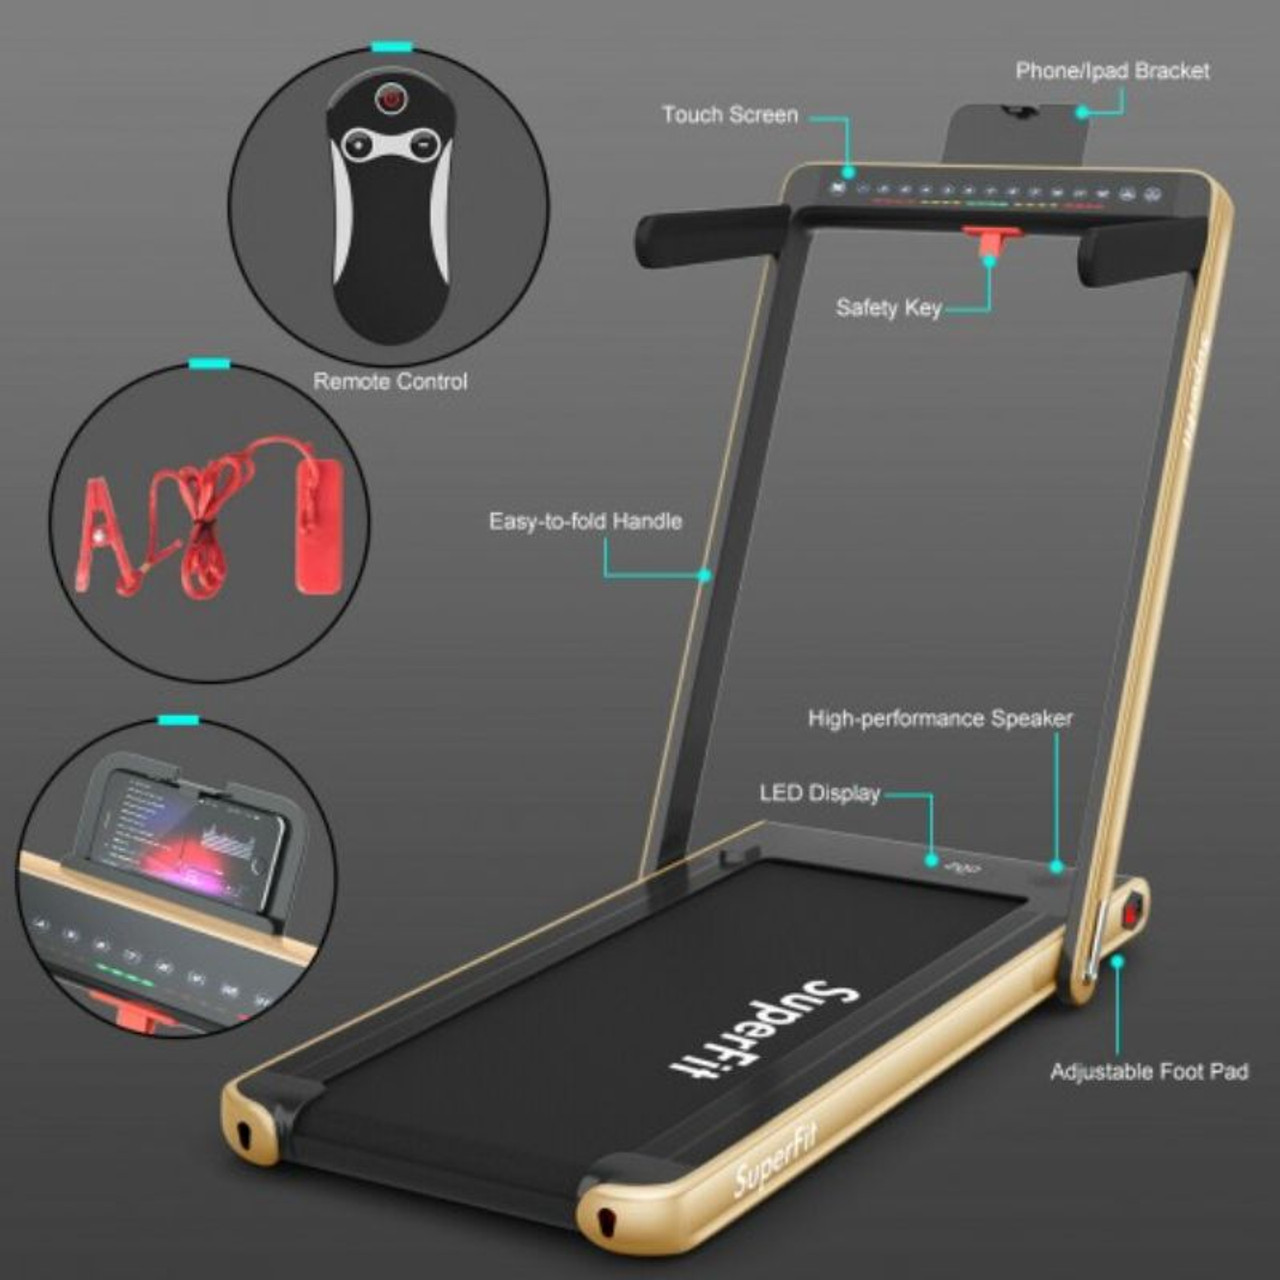 2.25HP Electric Motorized Fitness Folding Treadmill with Dual Display